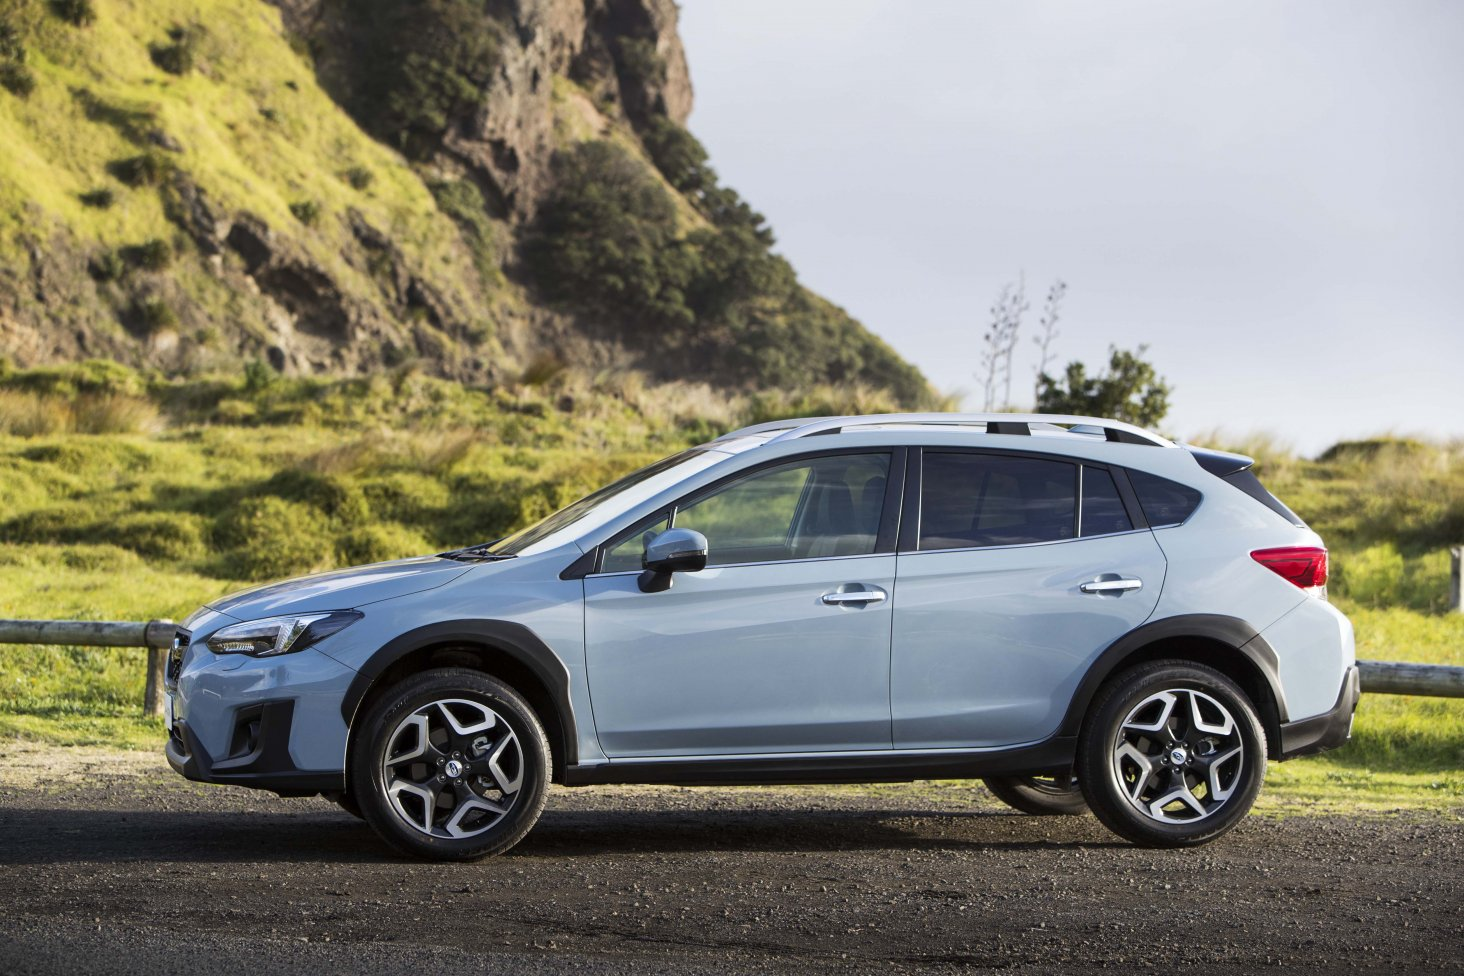 Following its launch in June 2017, Subaru's second generation compact SUV, the XV, has performed phenomenally in its first full year of sales and was up by 78.5% year-on-year versus 2017.